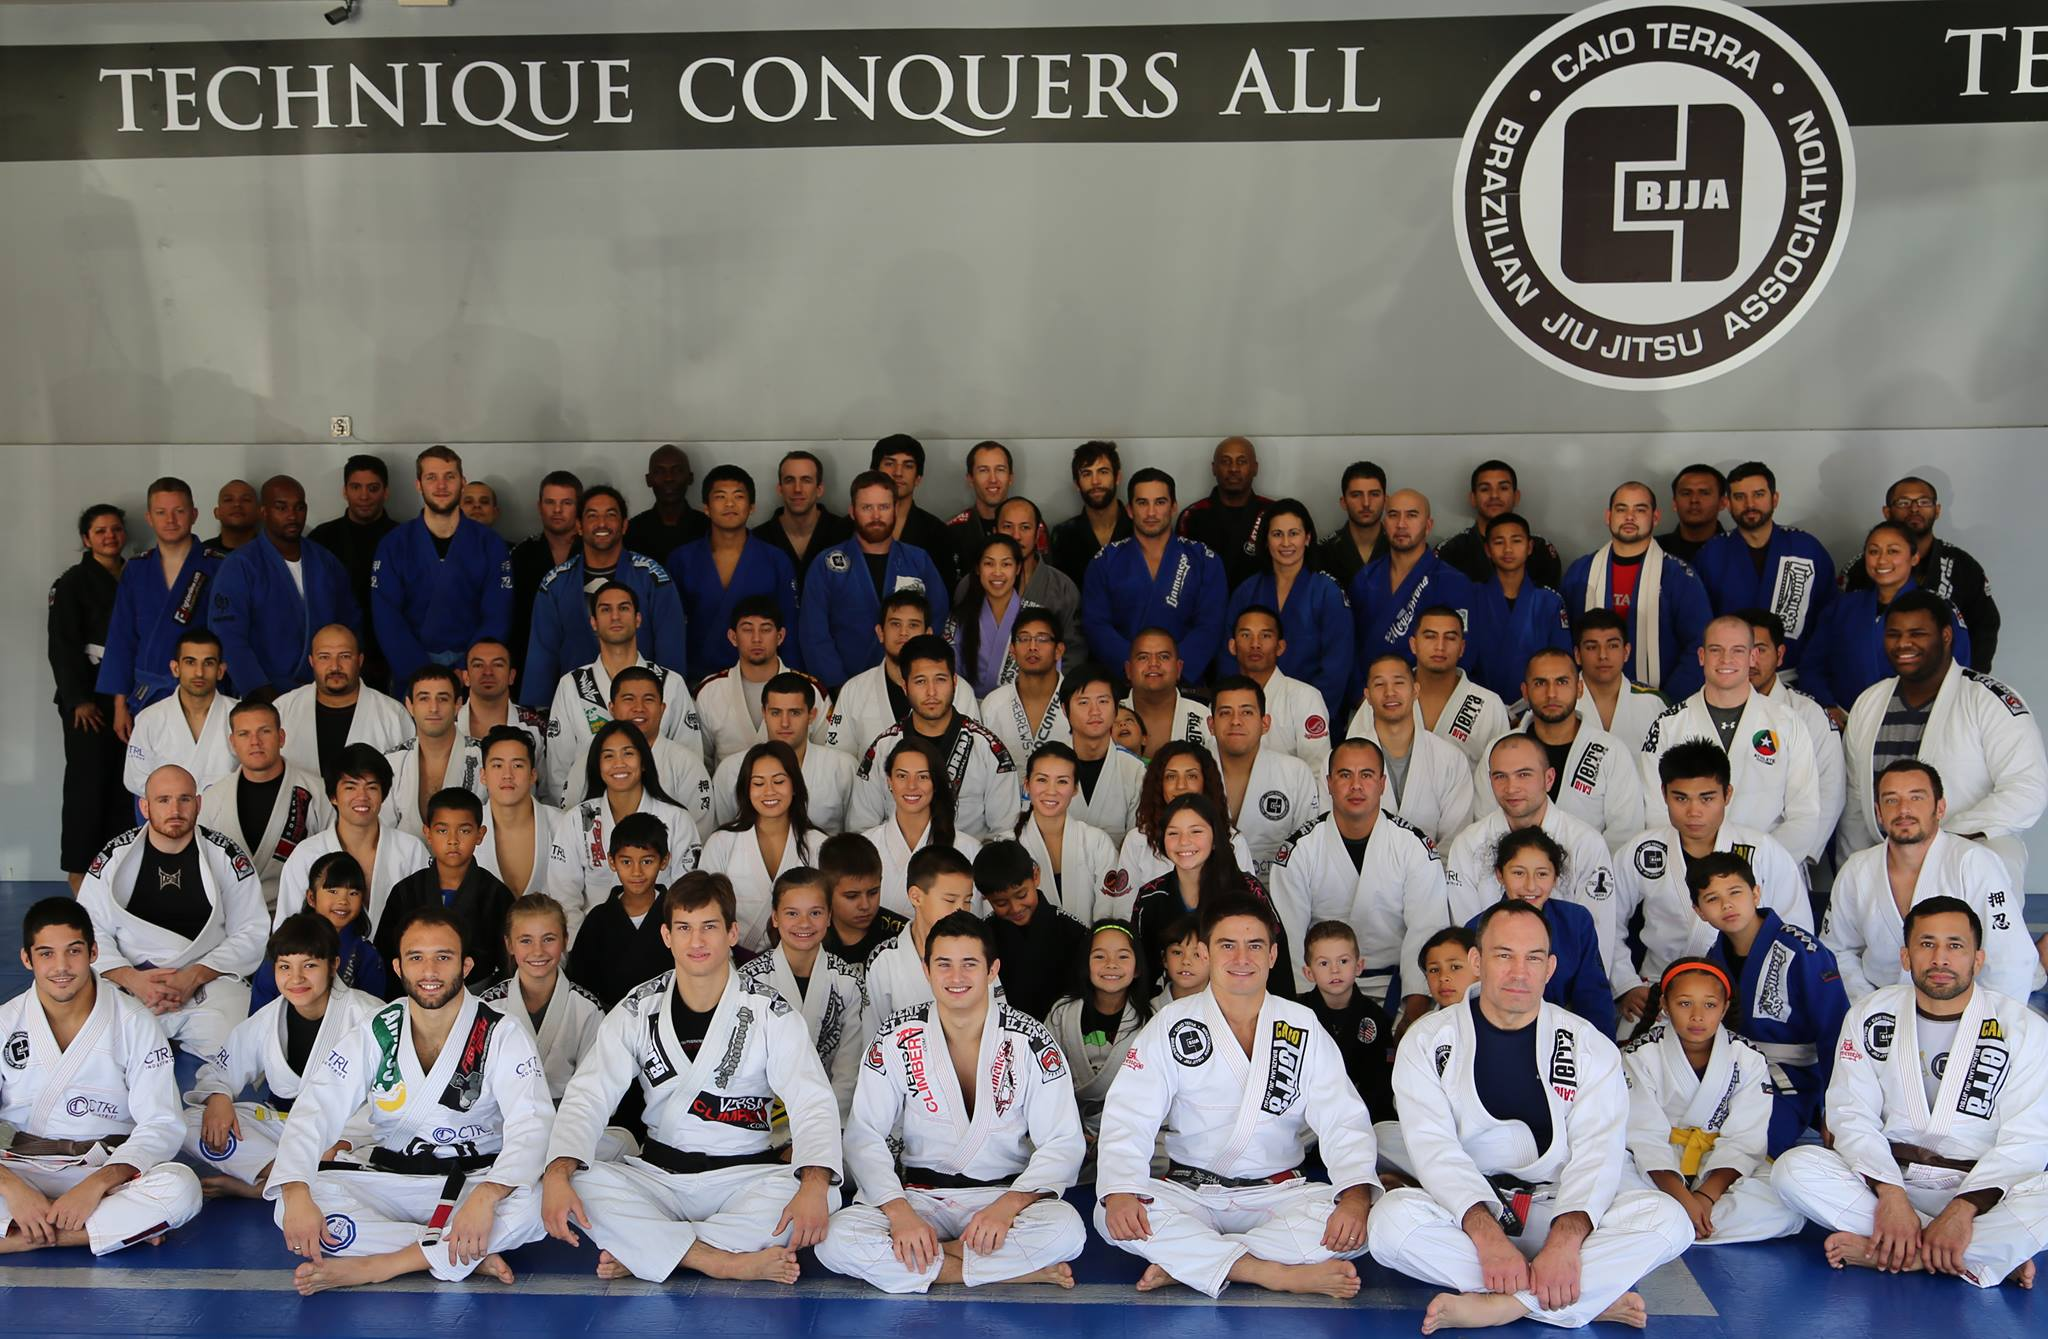 The students and instructors of GMA Institute of Martial Arts gathered for a belt ceremony and end of year celebration on Saturday, Dec. 7. Photo: Personal Archive